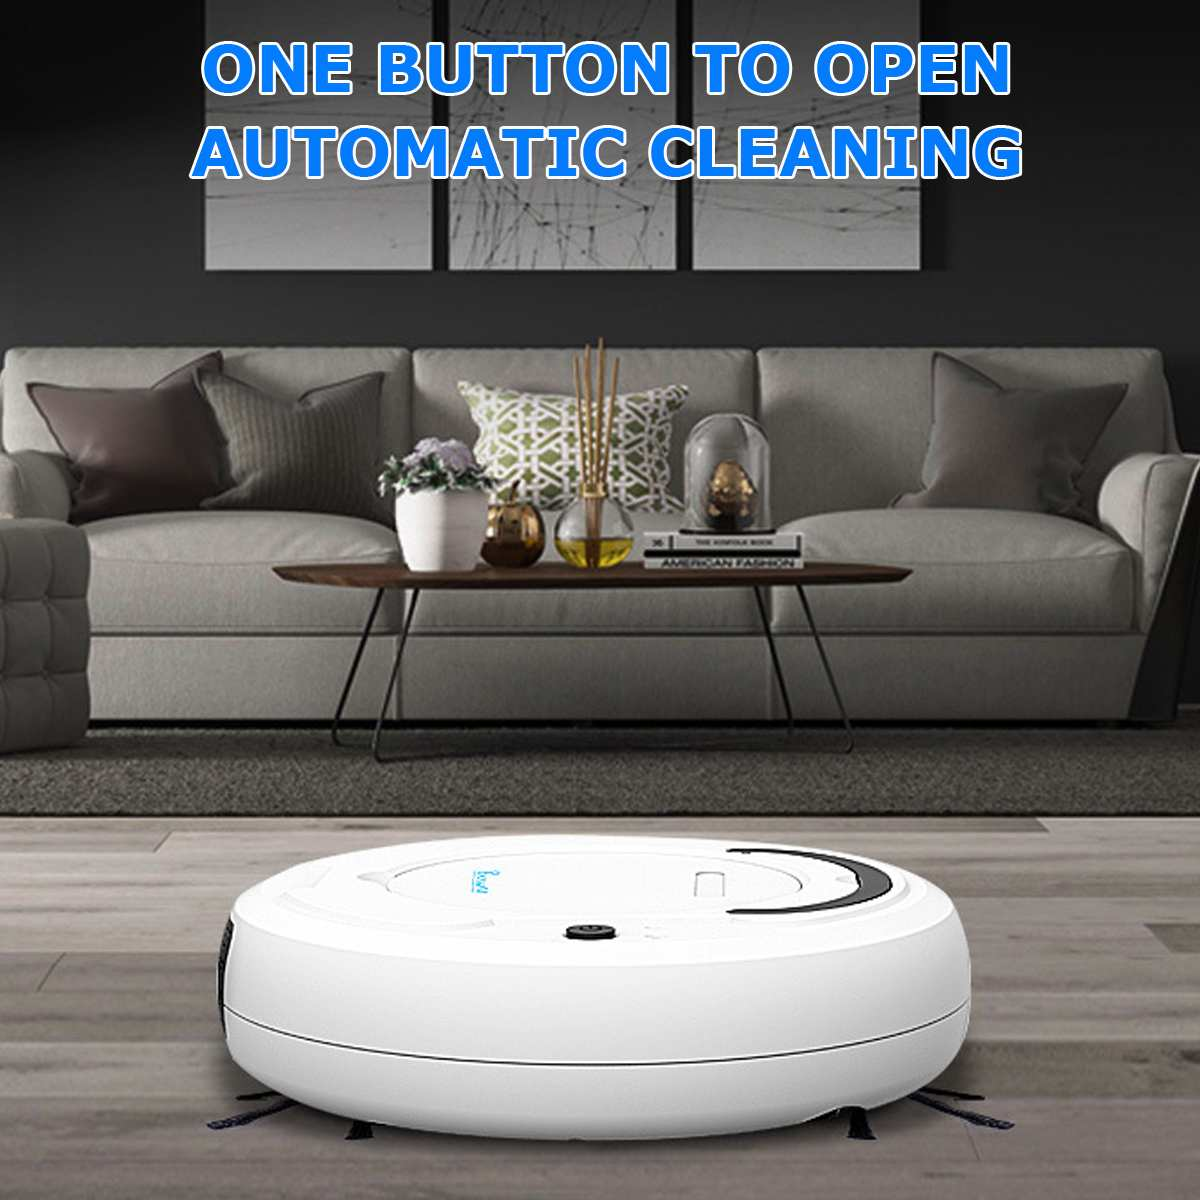 Vacuum Cleaner Automatic Floor Dust Dirt Cleaning Robot Dry Wet Sweeping Machine Intelligent Sweeping RobotVacuum Cleaner Automatic Floor Dust Dirt Cleaning Robot Dry Wet Sweeping Machine Intelligent Sweeping Robot